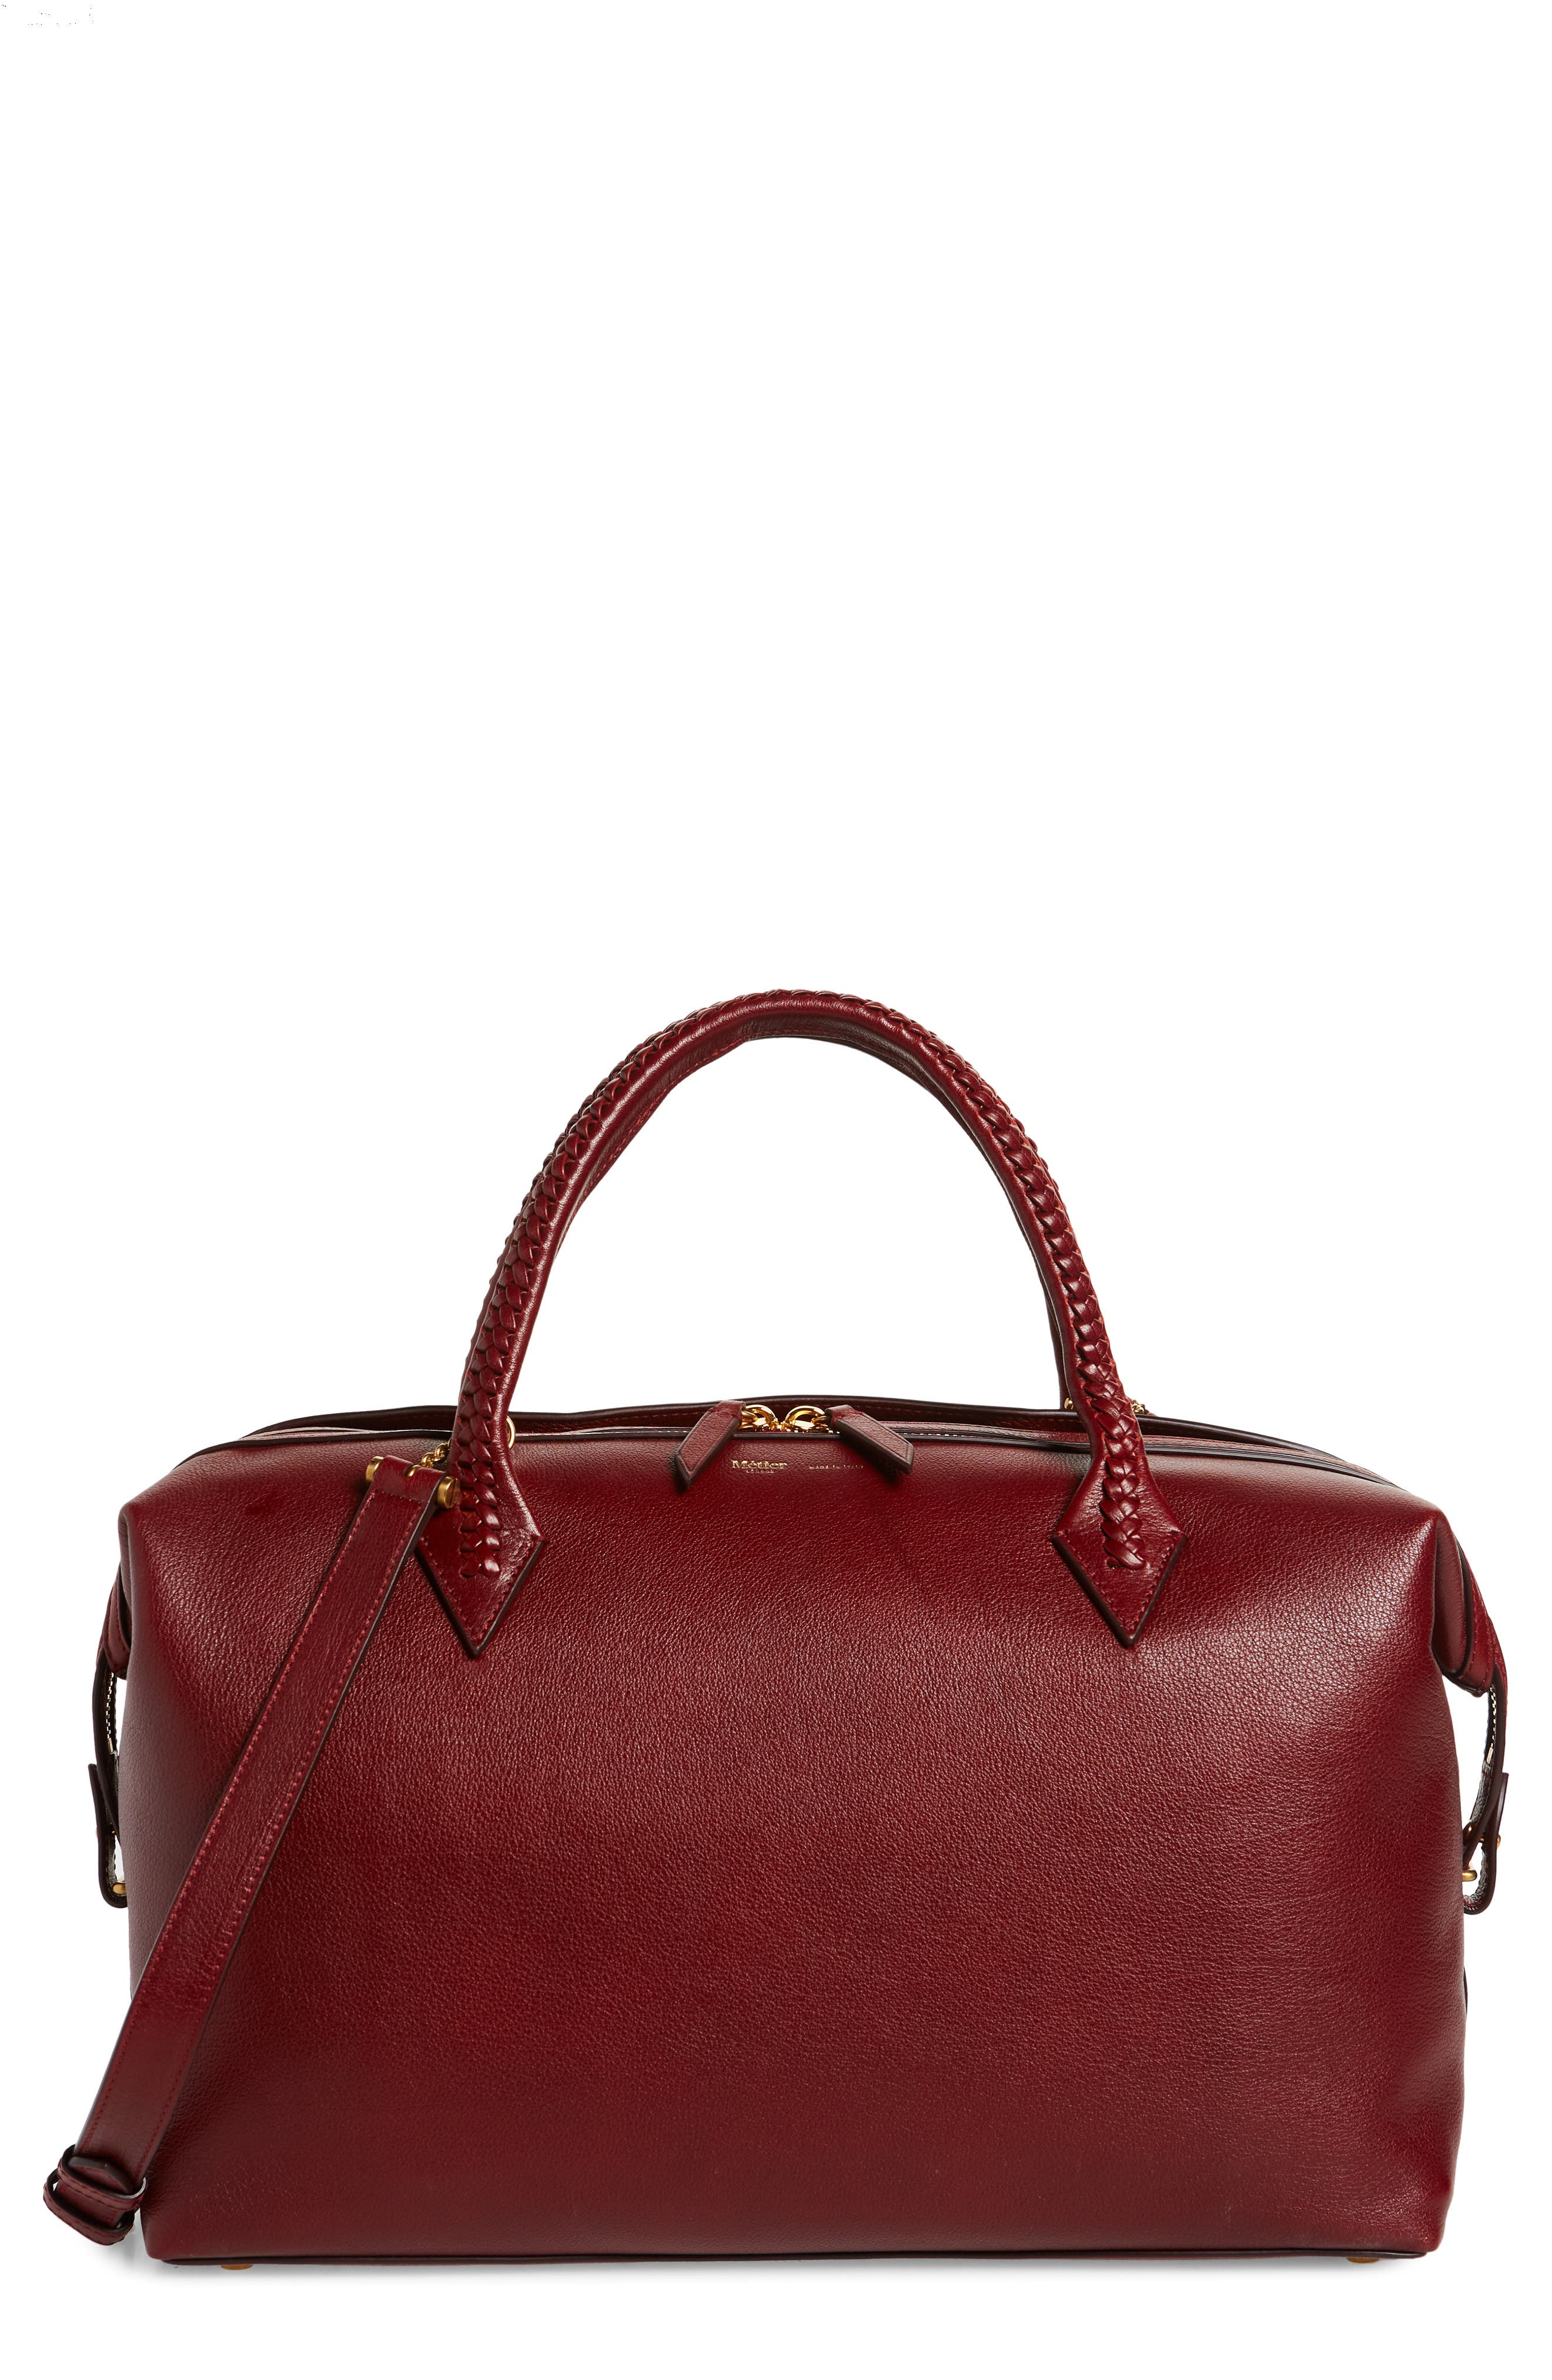 Perriand City Leather Duffle Bag